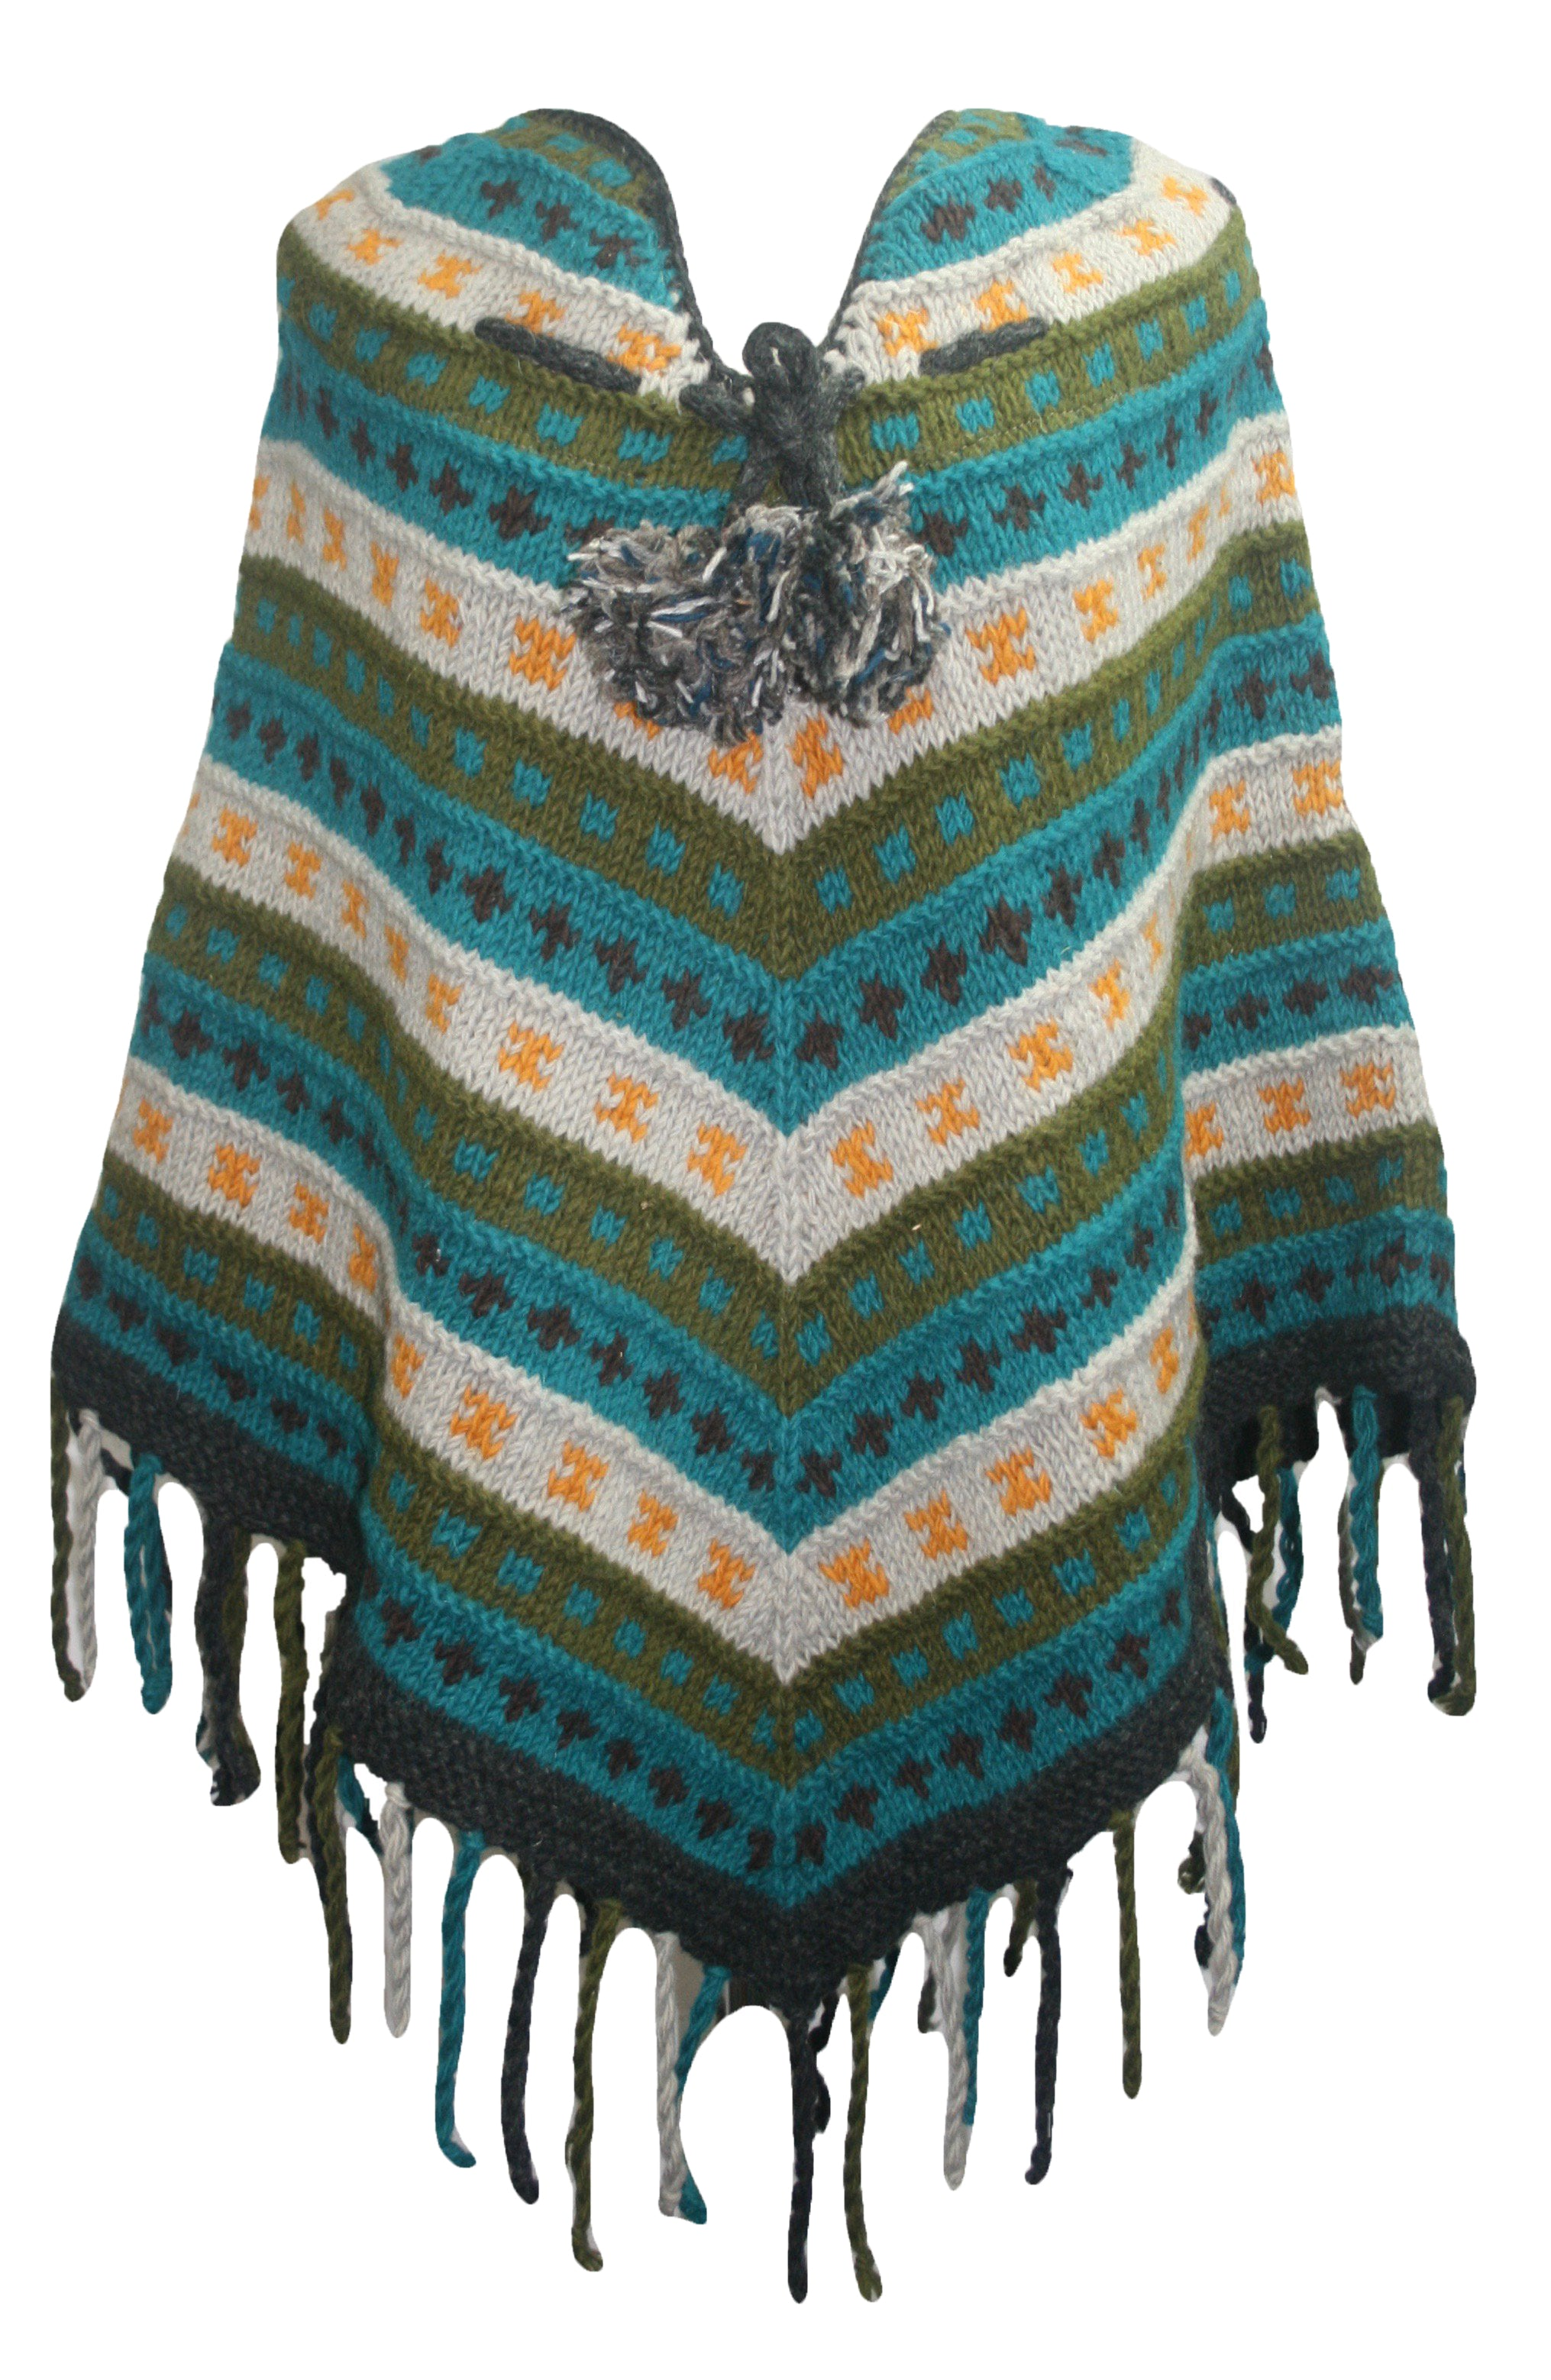 PN 200 Himalayan Thick Sheep Wool Hand Knitted Poncho - Agan Traders, PN 200 8